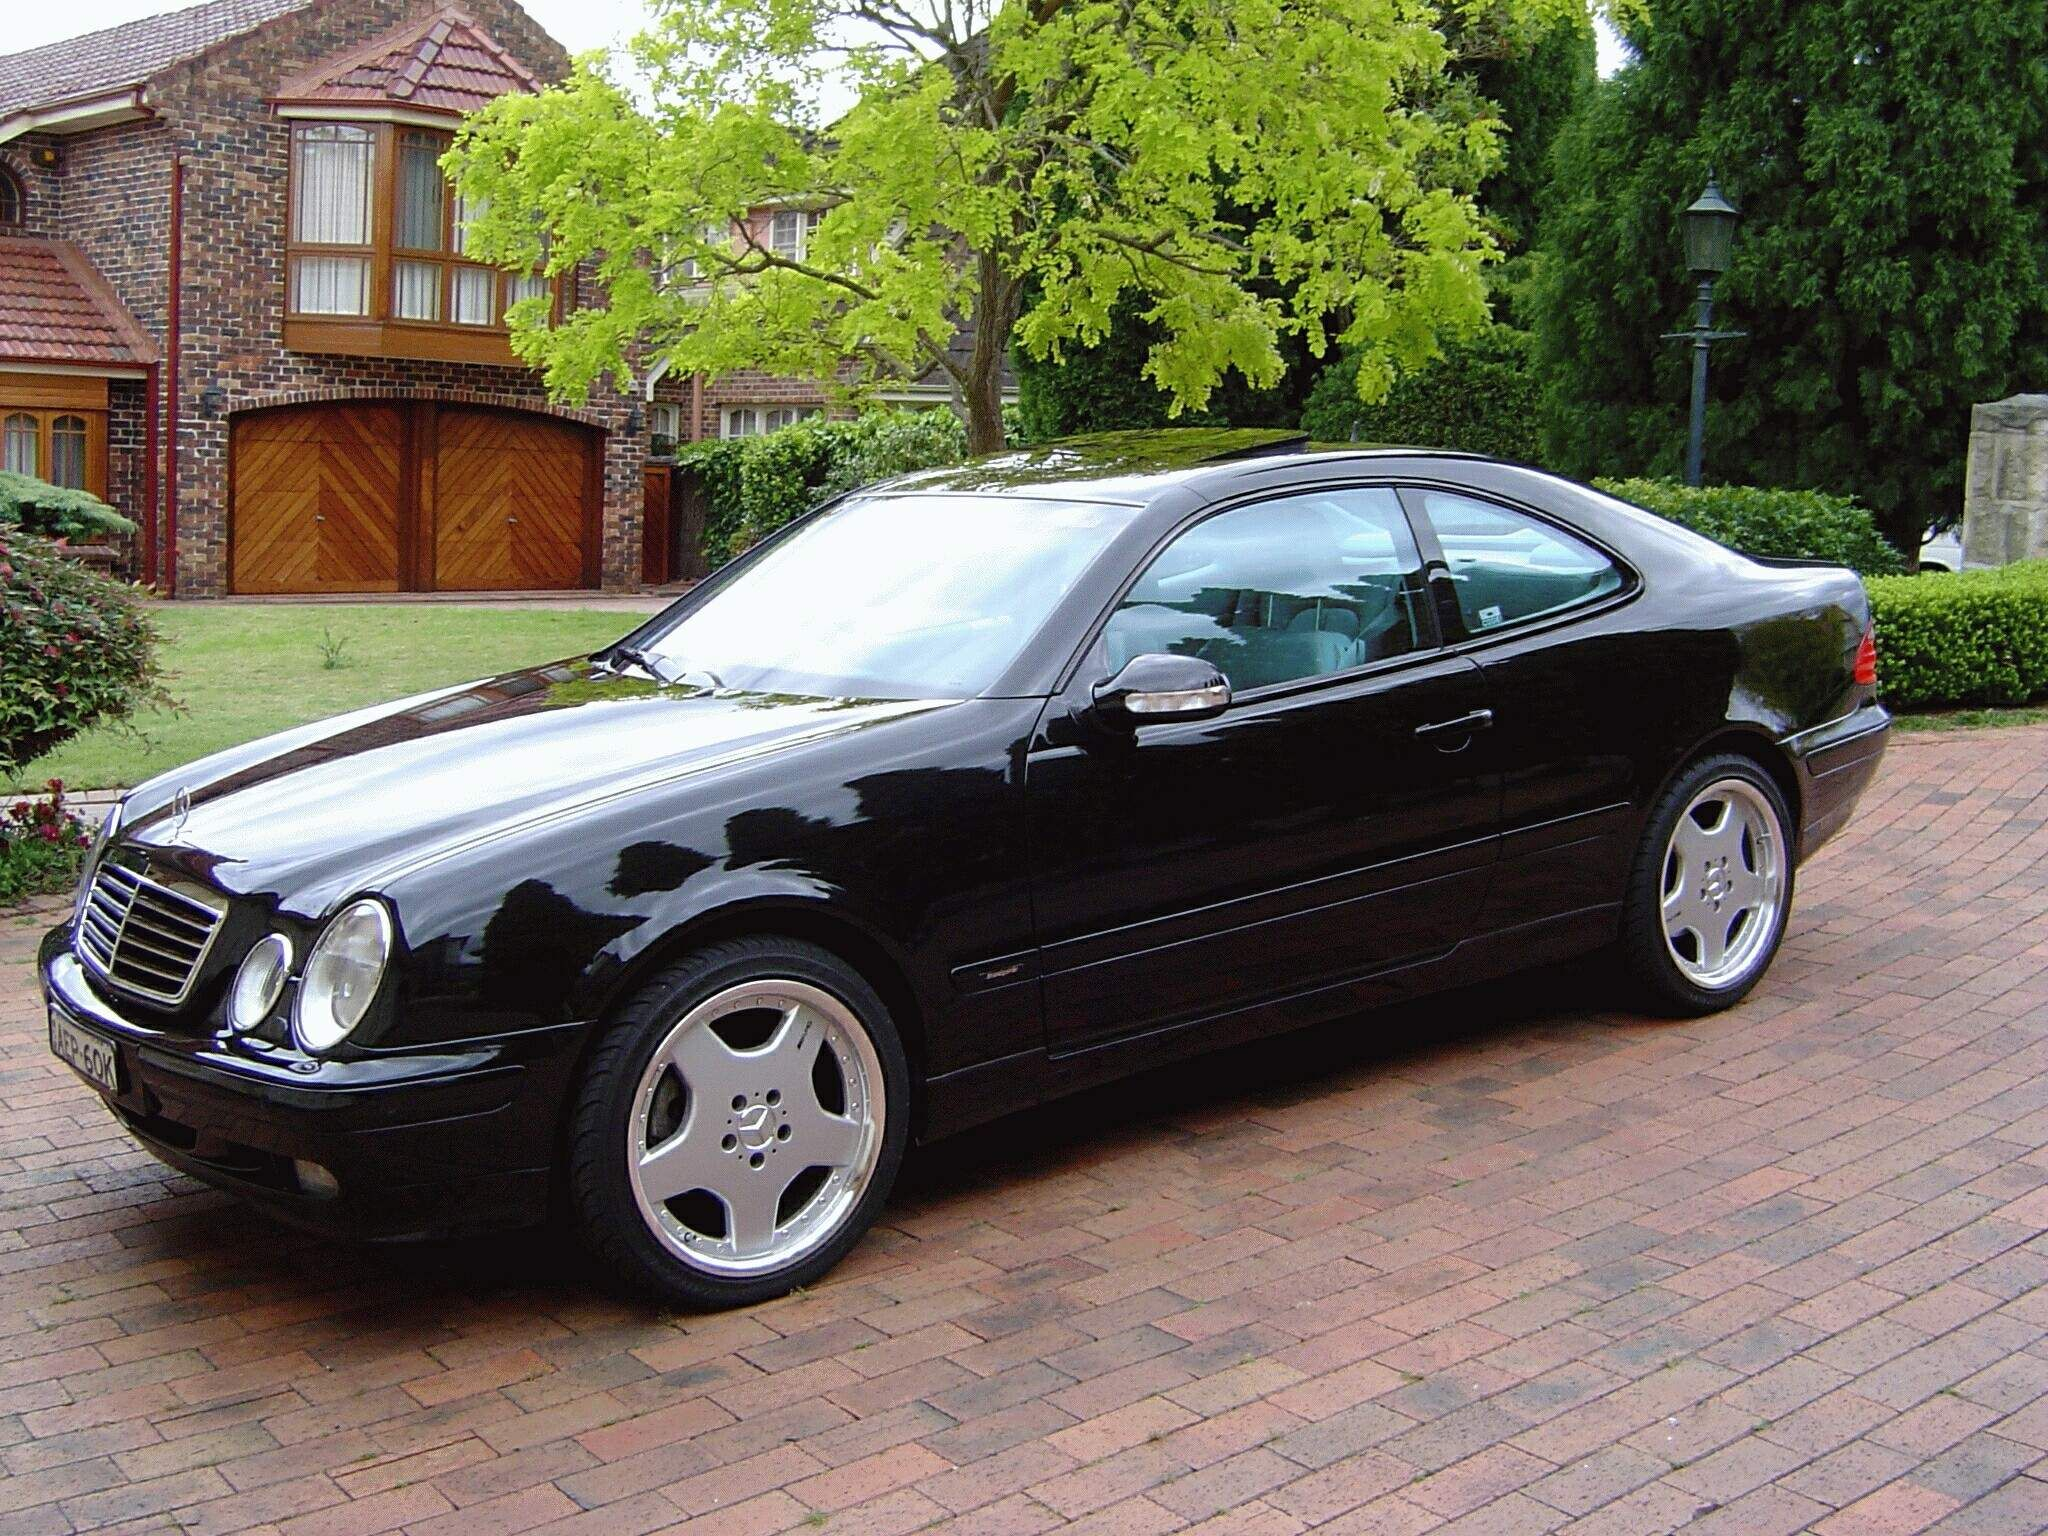 CLK 430 in black, natch. Owned from 20012003/4. One bad